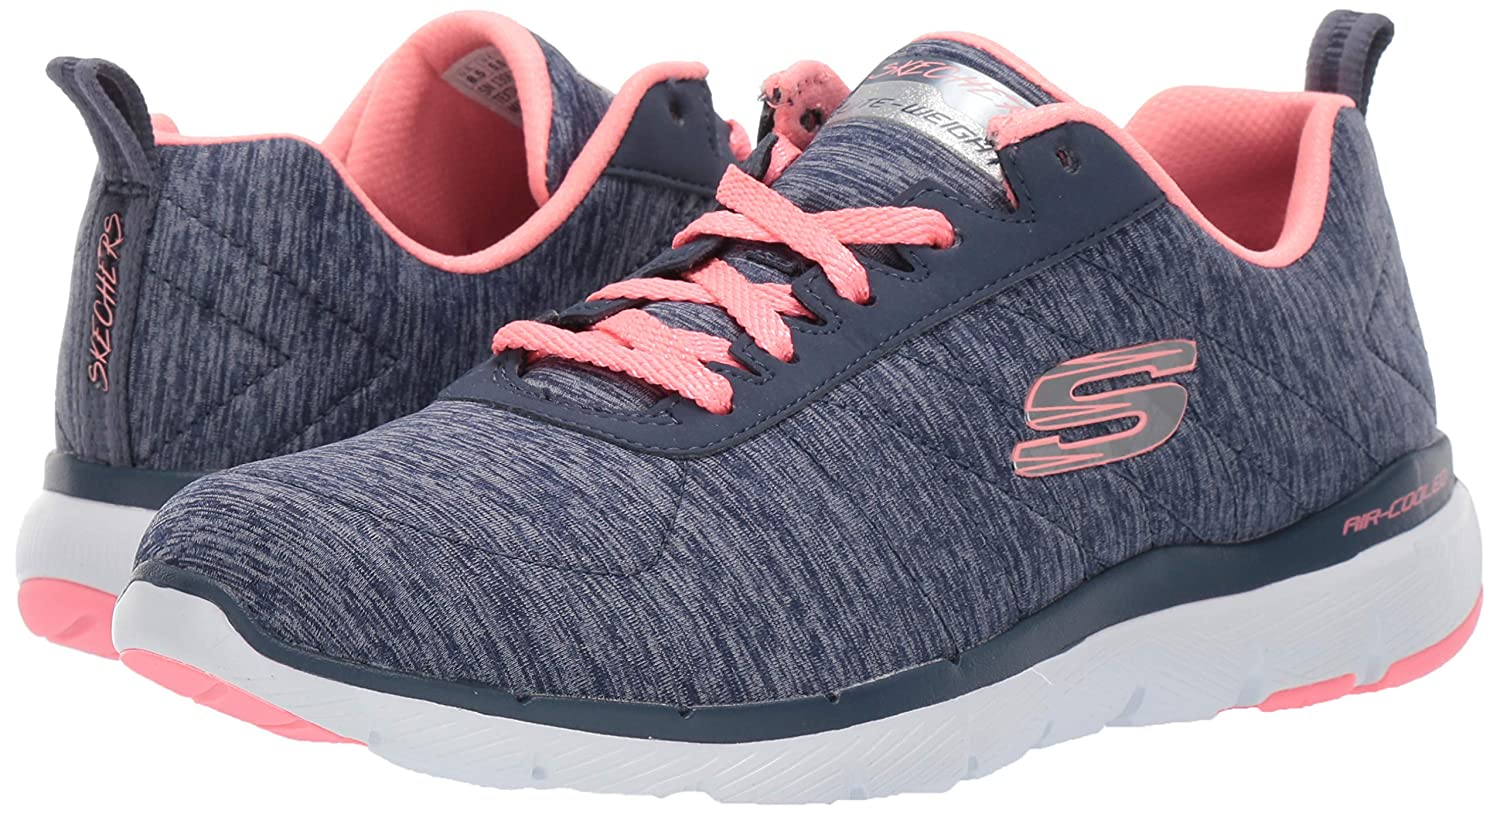 Skechers Damen Flex Appeal 3.0-insiders Turnschuhe    55debd